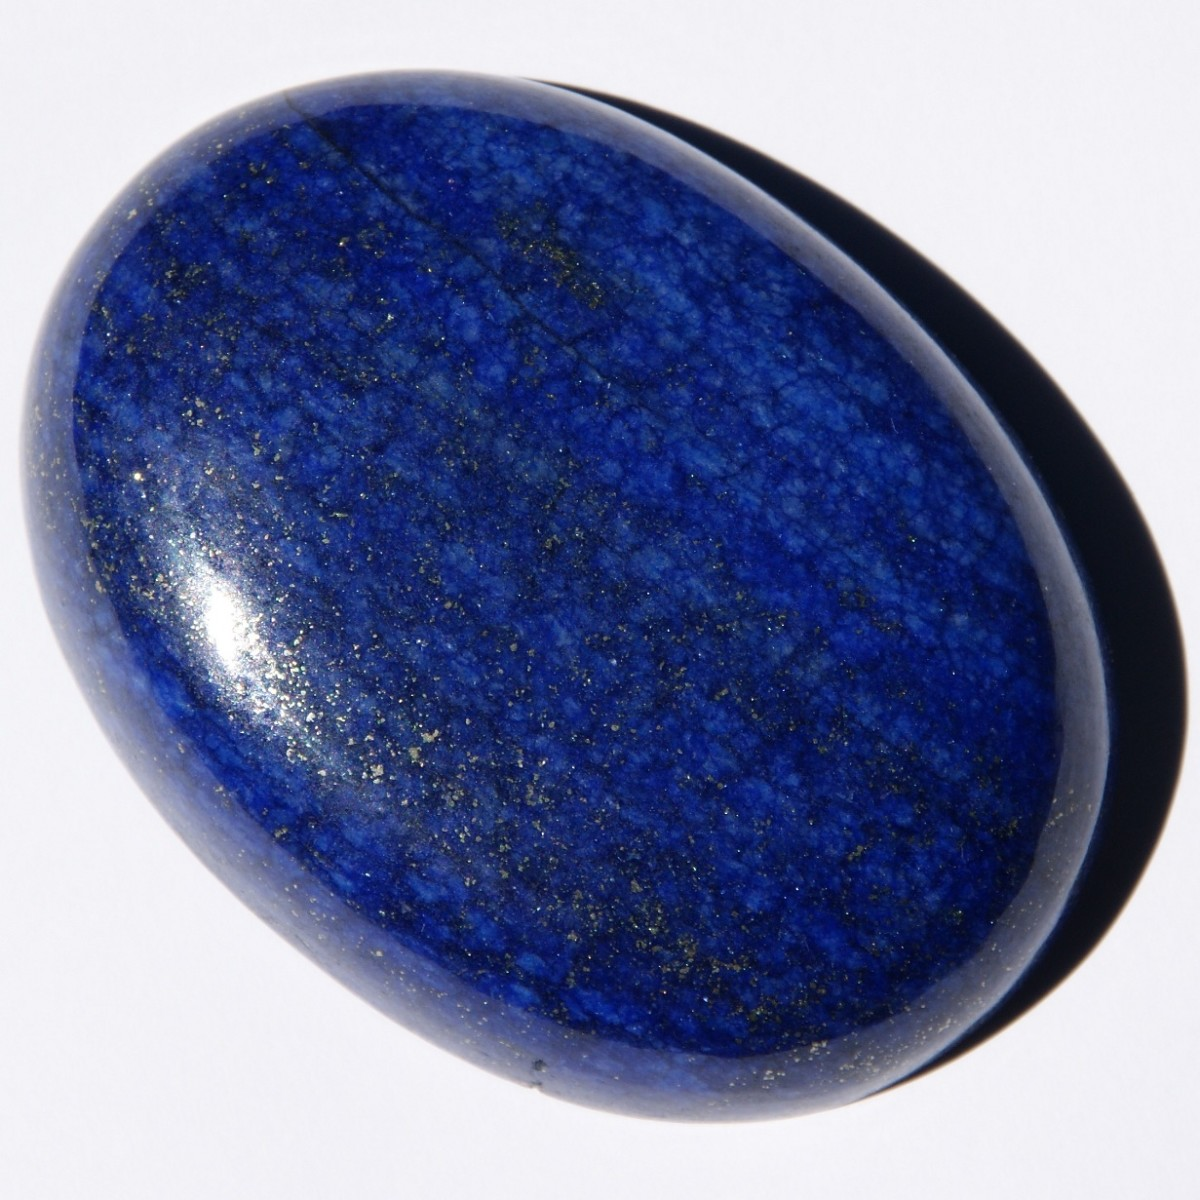 Lapis lazuli is a good crystal for communication and emotional healing.